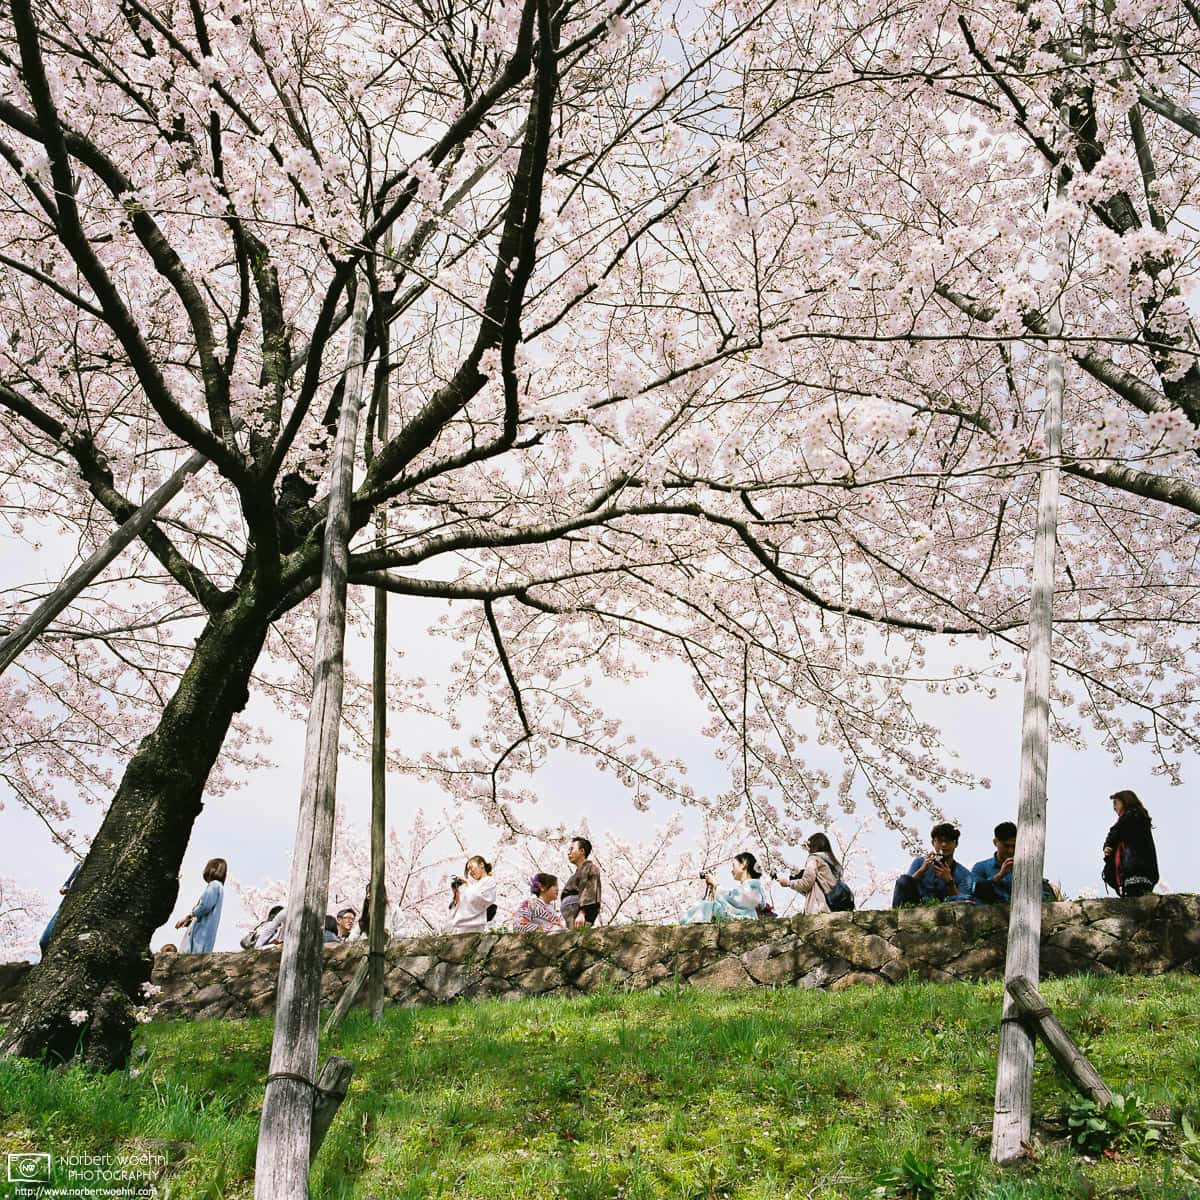 Visitors enjoying Hanami (花見; Cherry Blossom Viewing) along the Keage Incline in the Higashiyama district of eastern Kyoto, Japan.